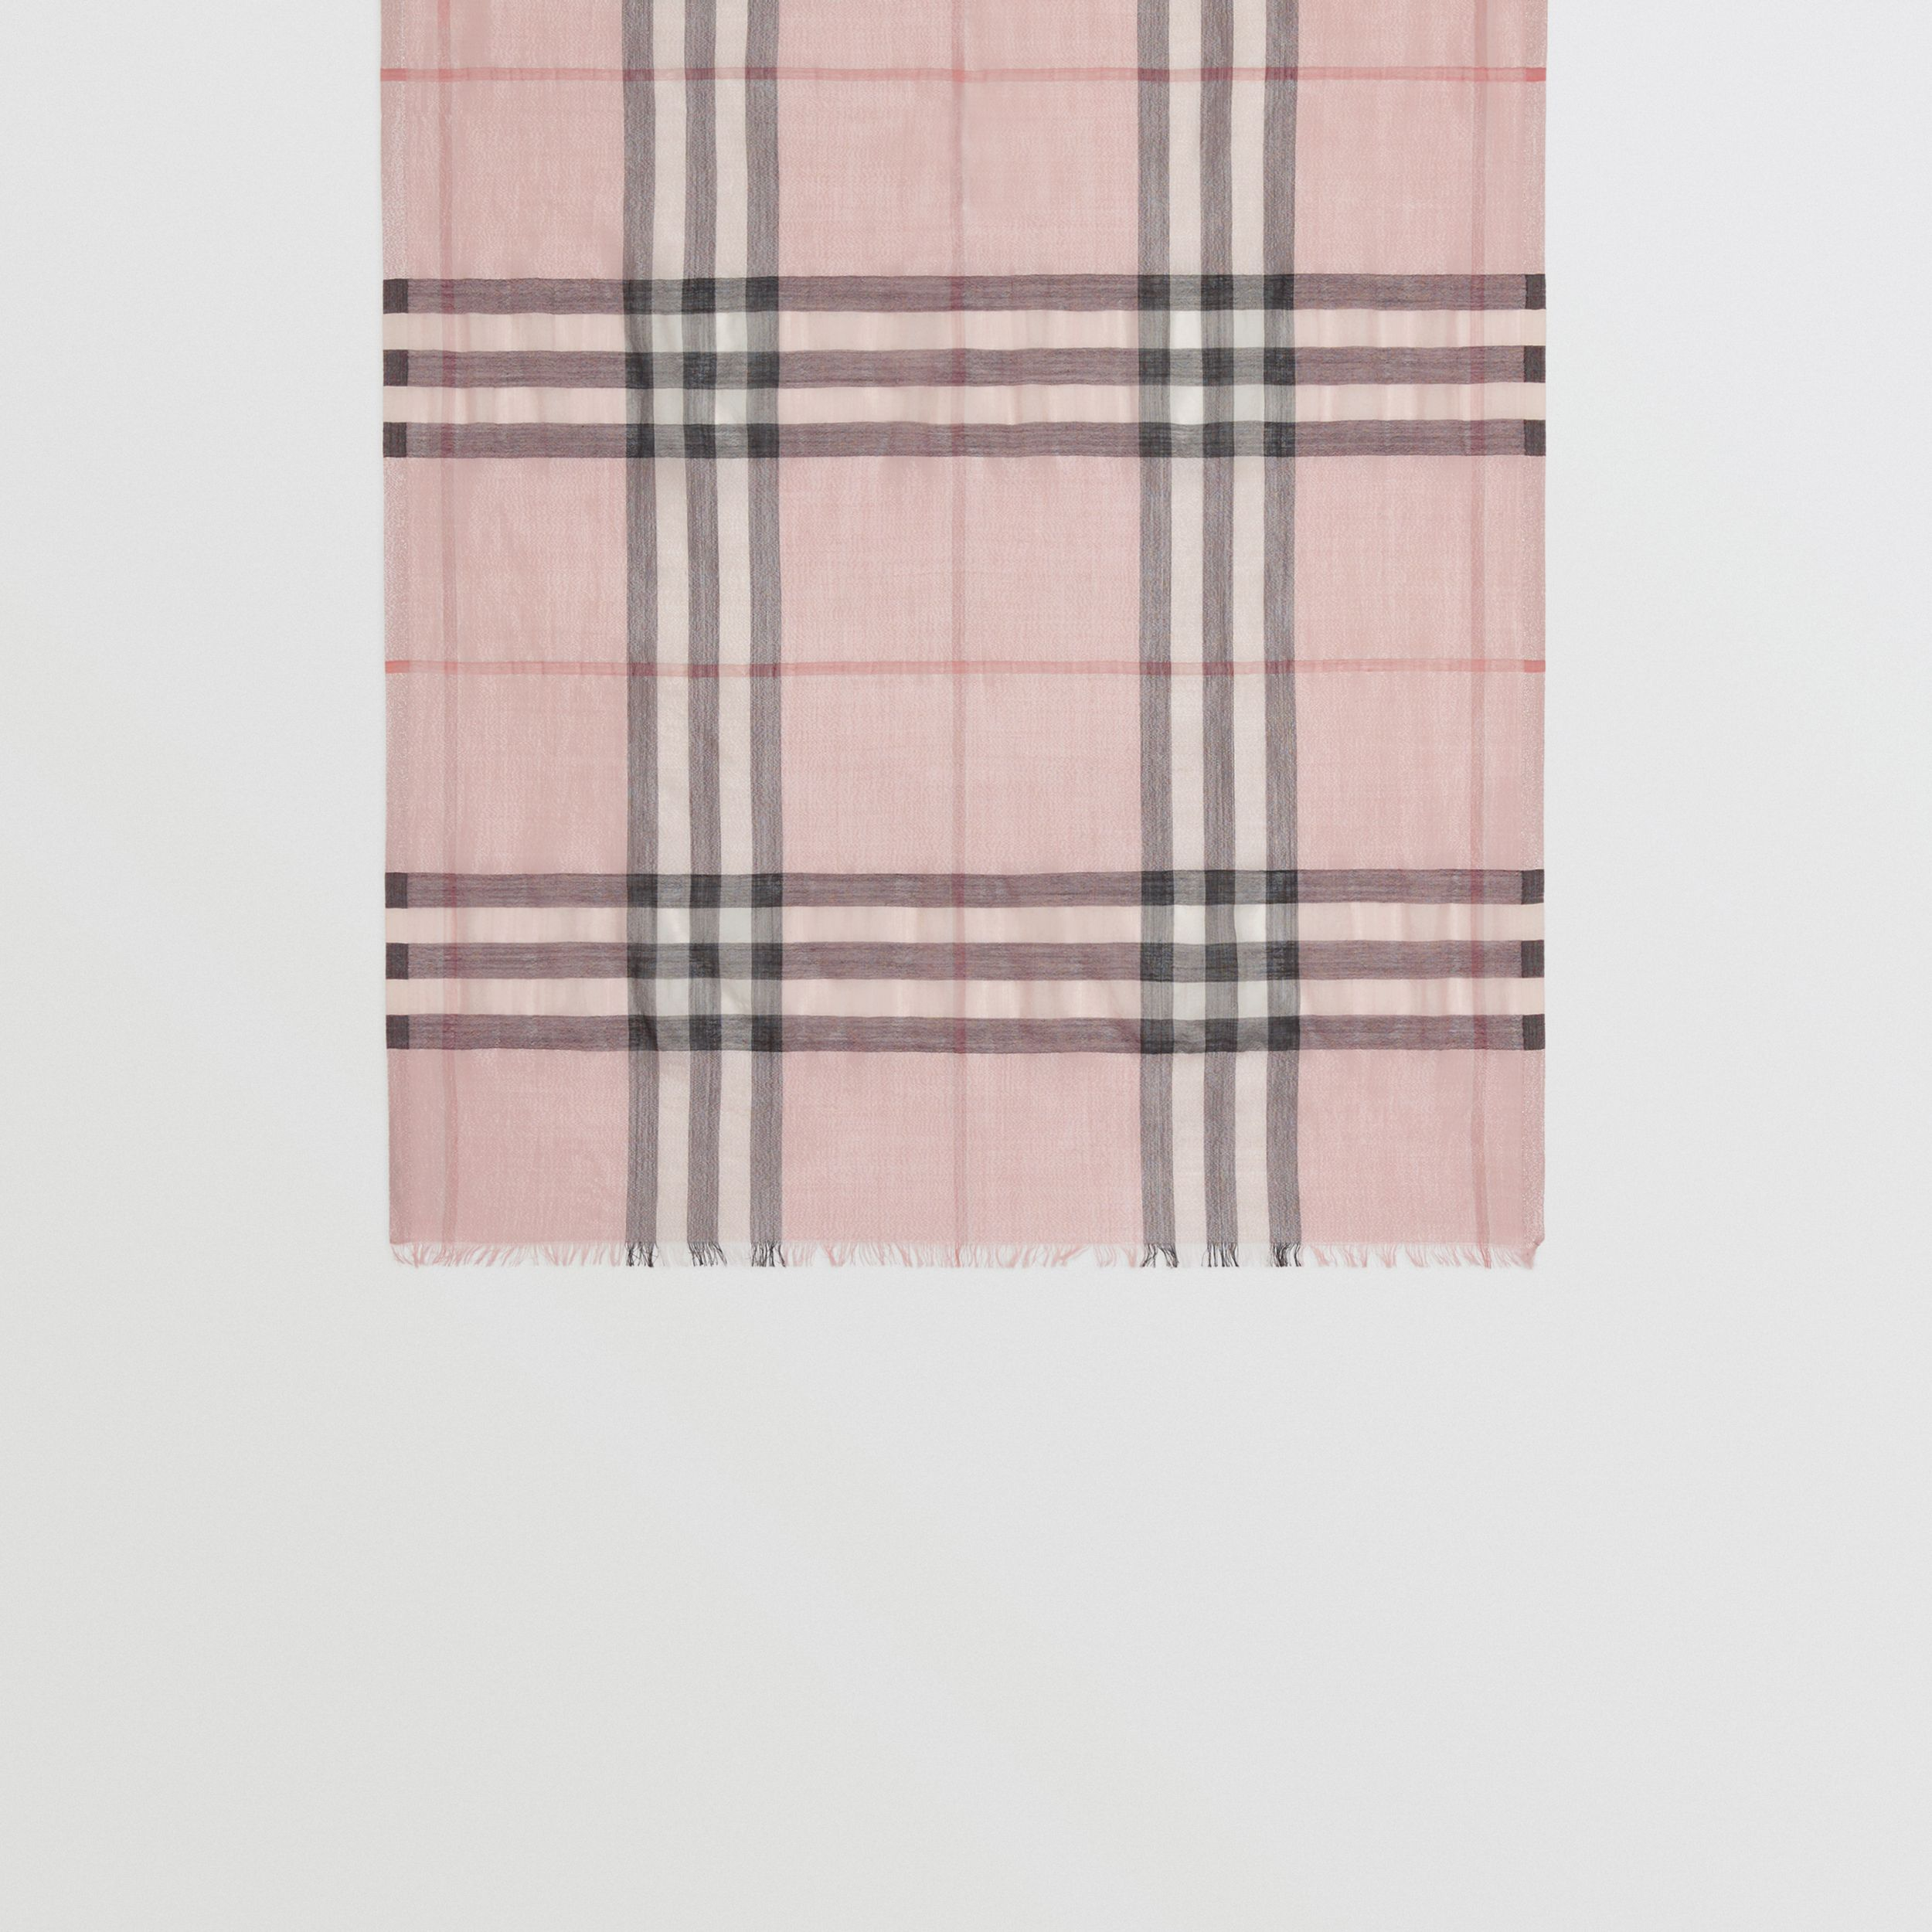 Metallic Check Silk and Wool Scarf in Ash Rose/silver | Burberry - 4